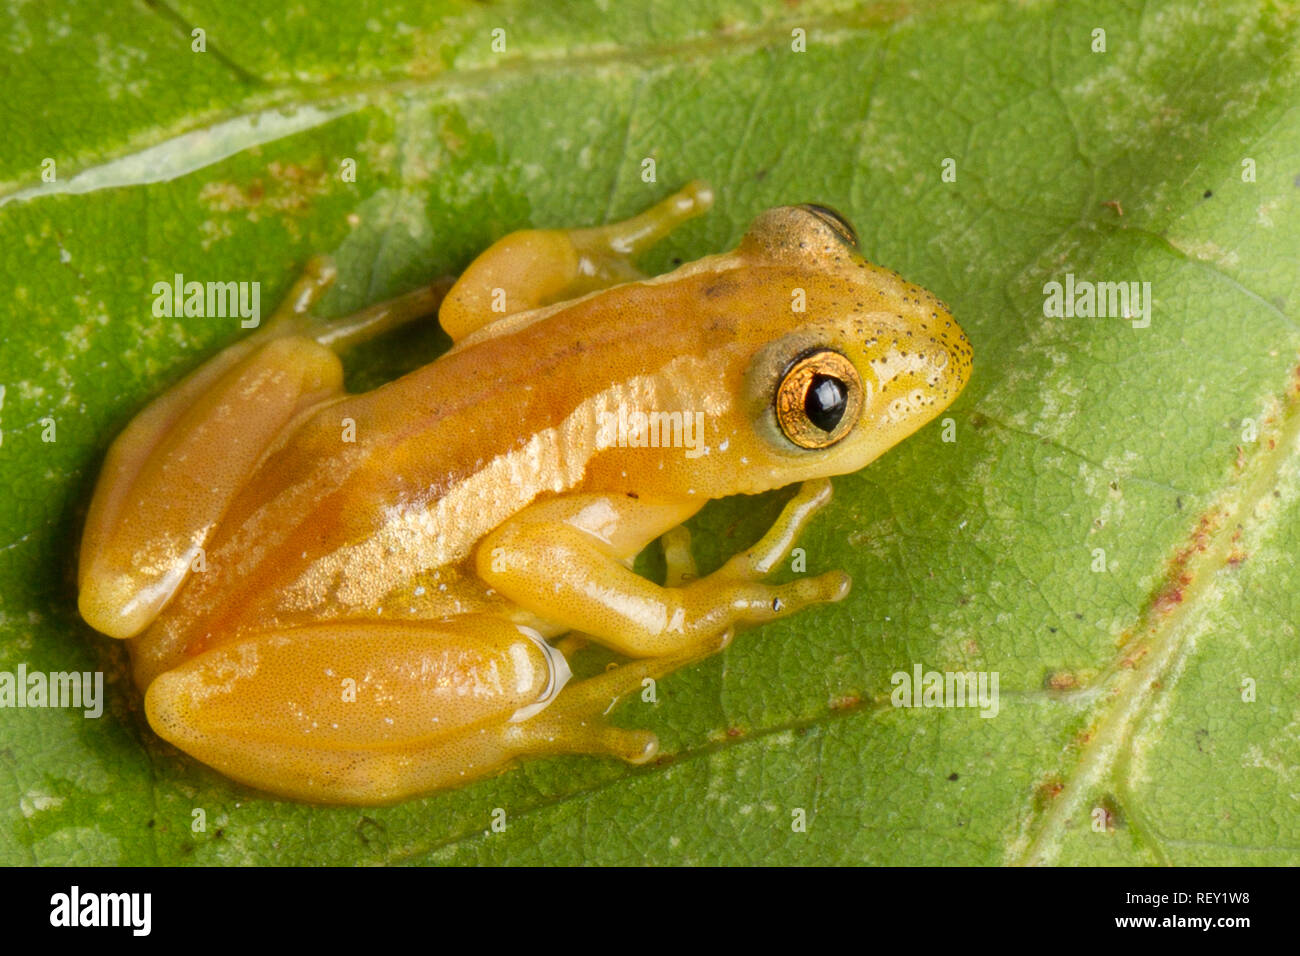 Natal leaf-folding frog or banana frog, Afrixalus spinifrons, is a vulnerable species from the hyperoliidae family found in forests of South Africa. - Stock Image